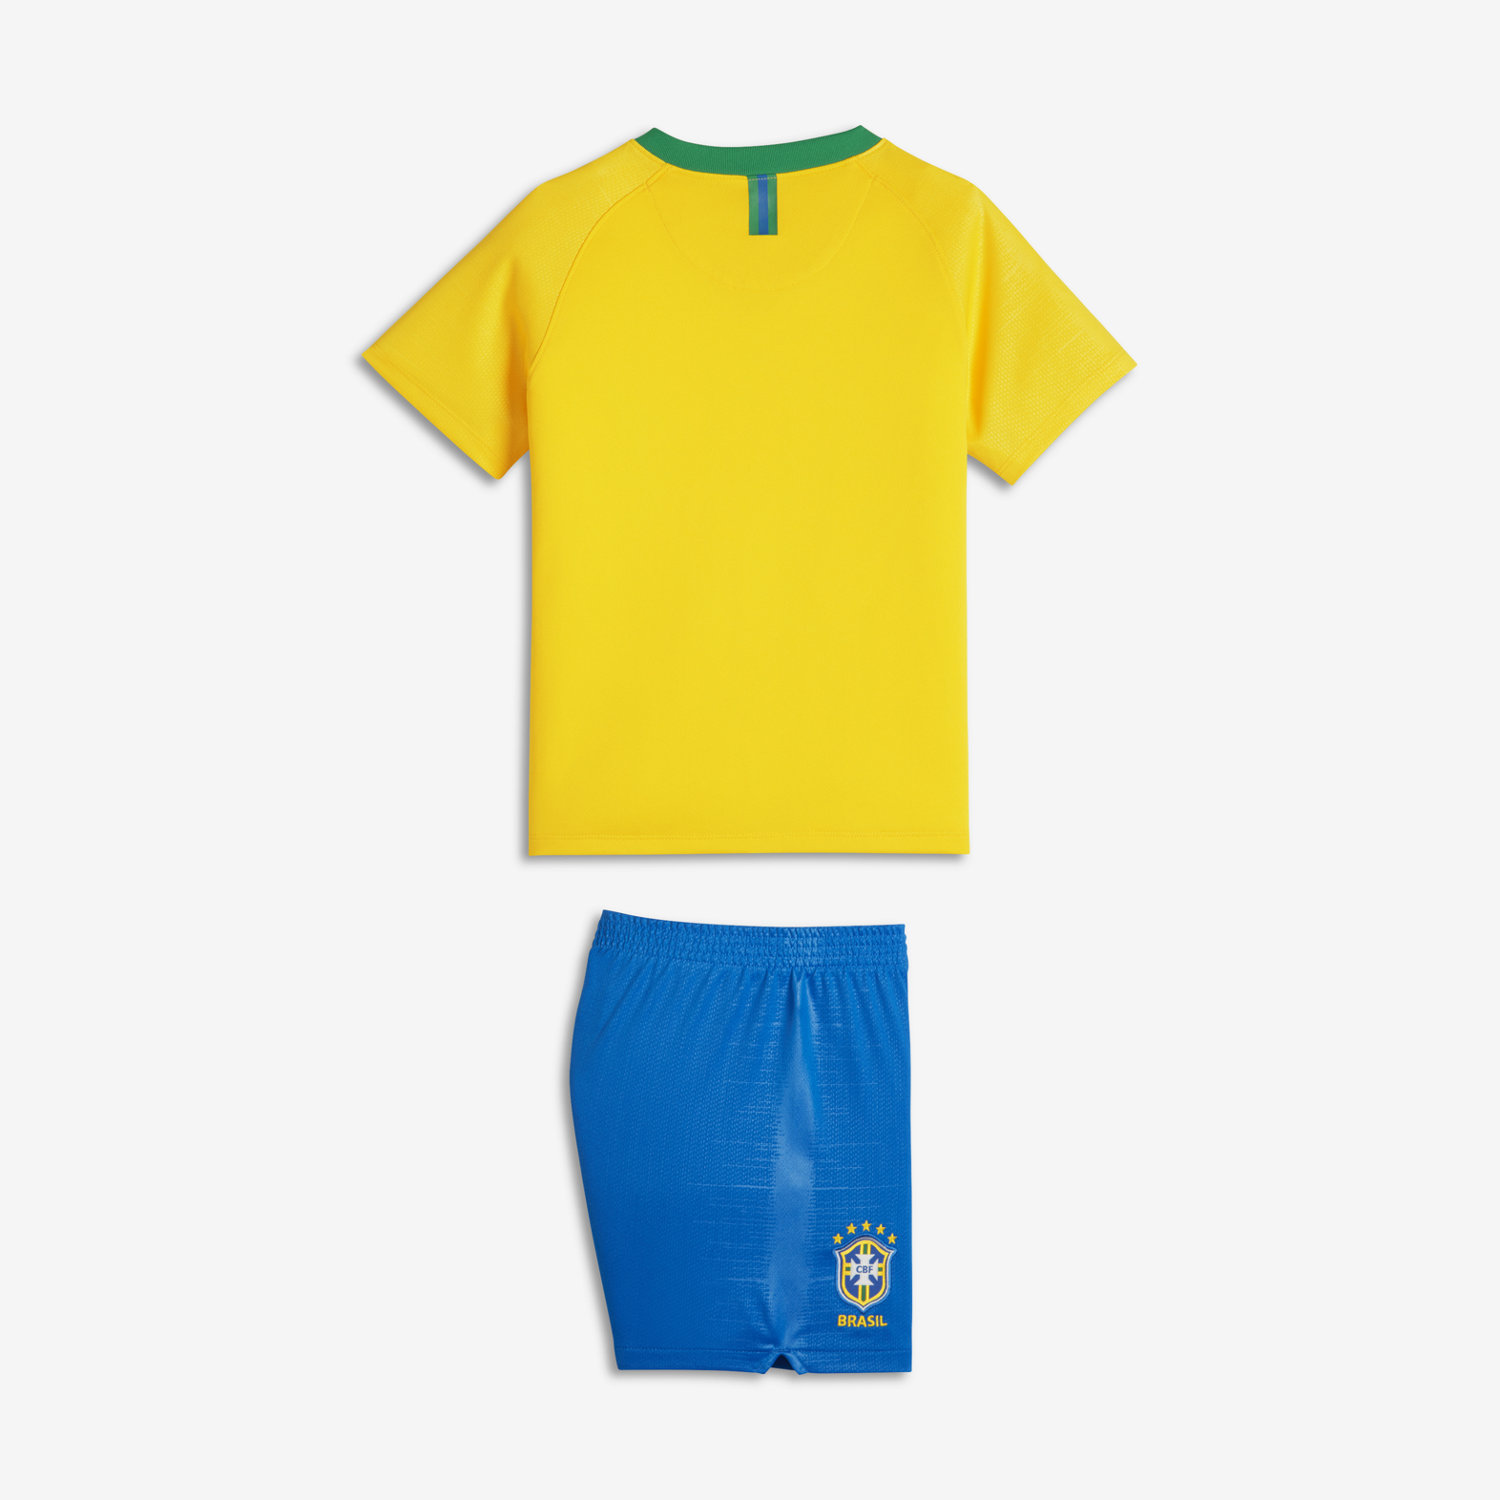 2b64cd0c85 2018 Brazil CBF Stadium Home Younger Kids  Football Kit. Nike.com UK